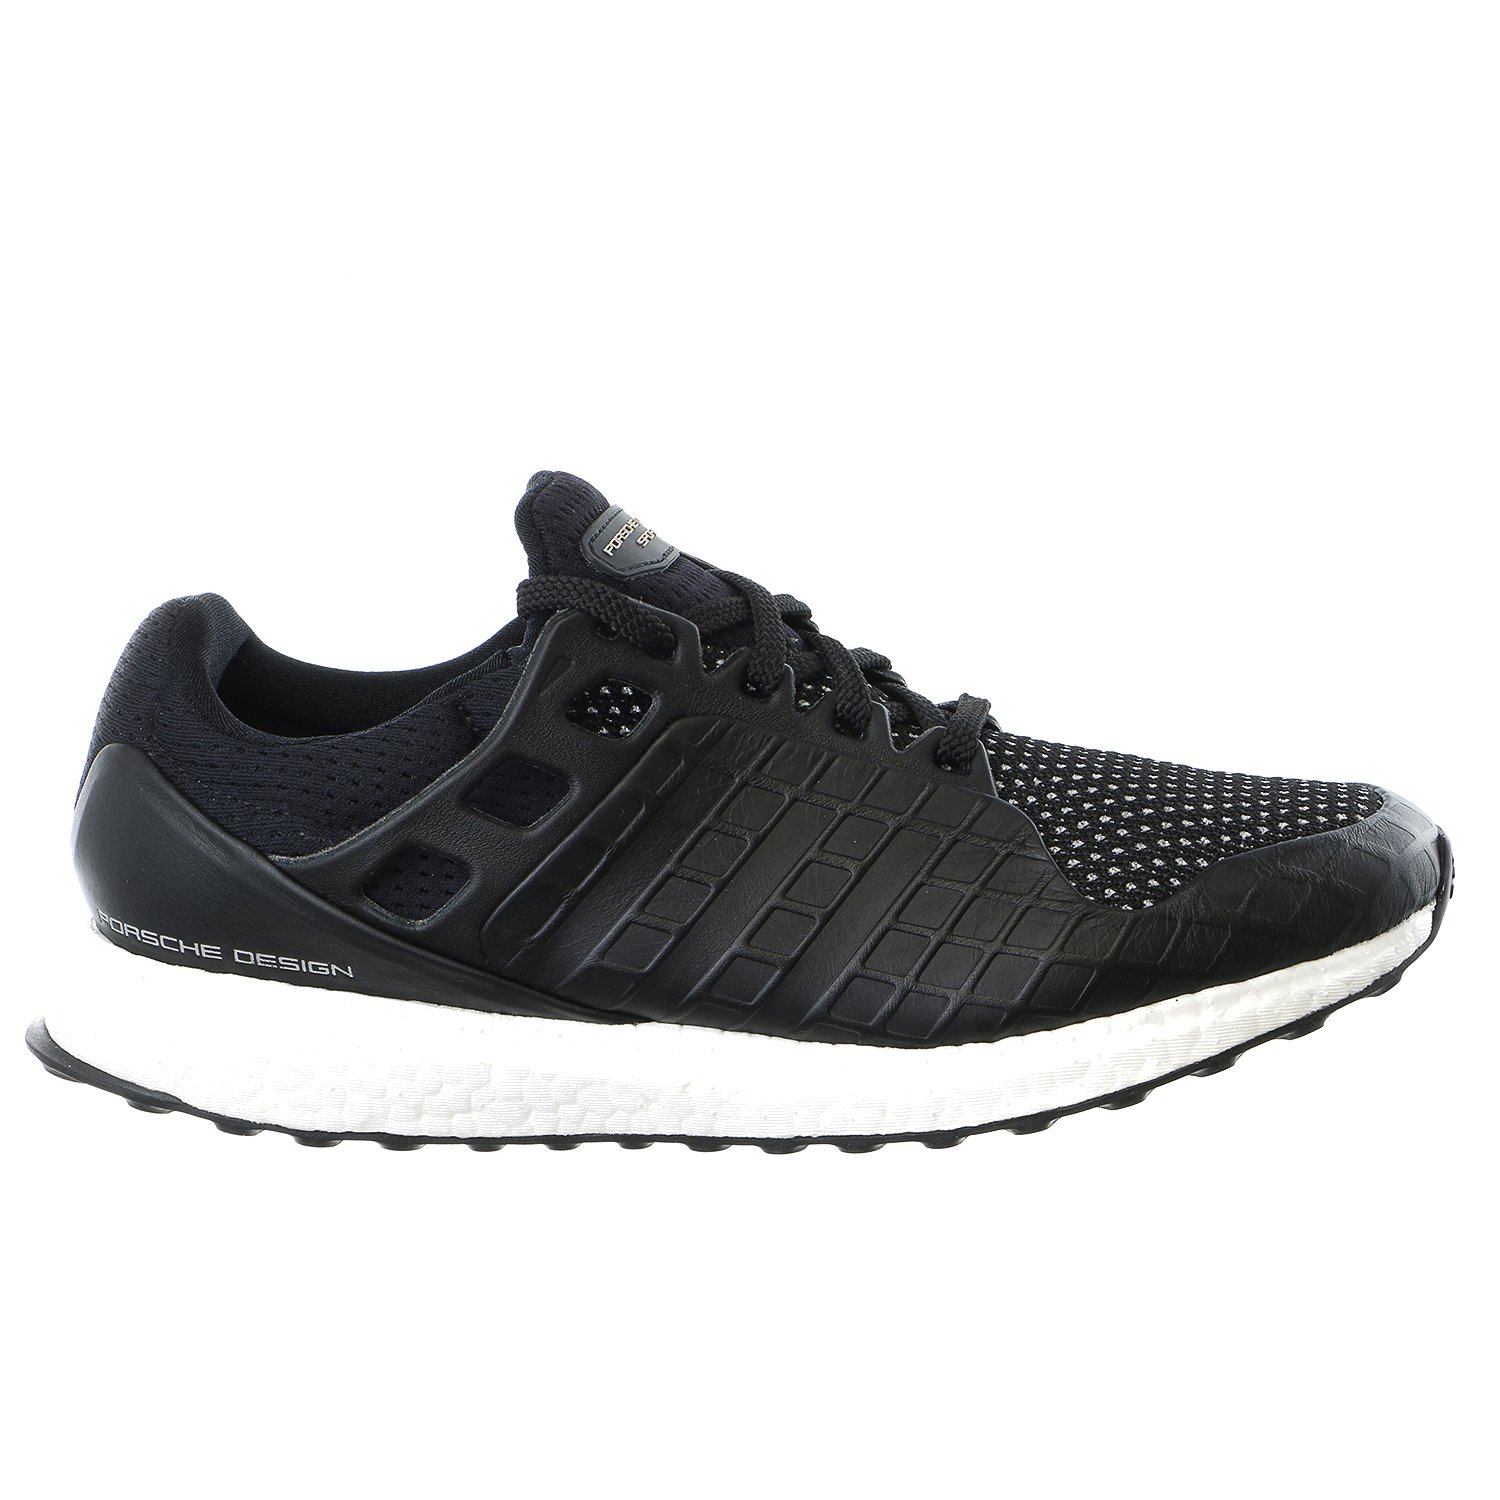 2cb6c97ac9235 on sale Porsche Design by Adidas PDS Ultra Boost Trainer Training Sneaker  Athletic Shoe - Mens